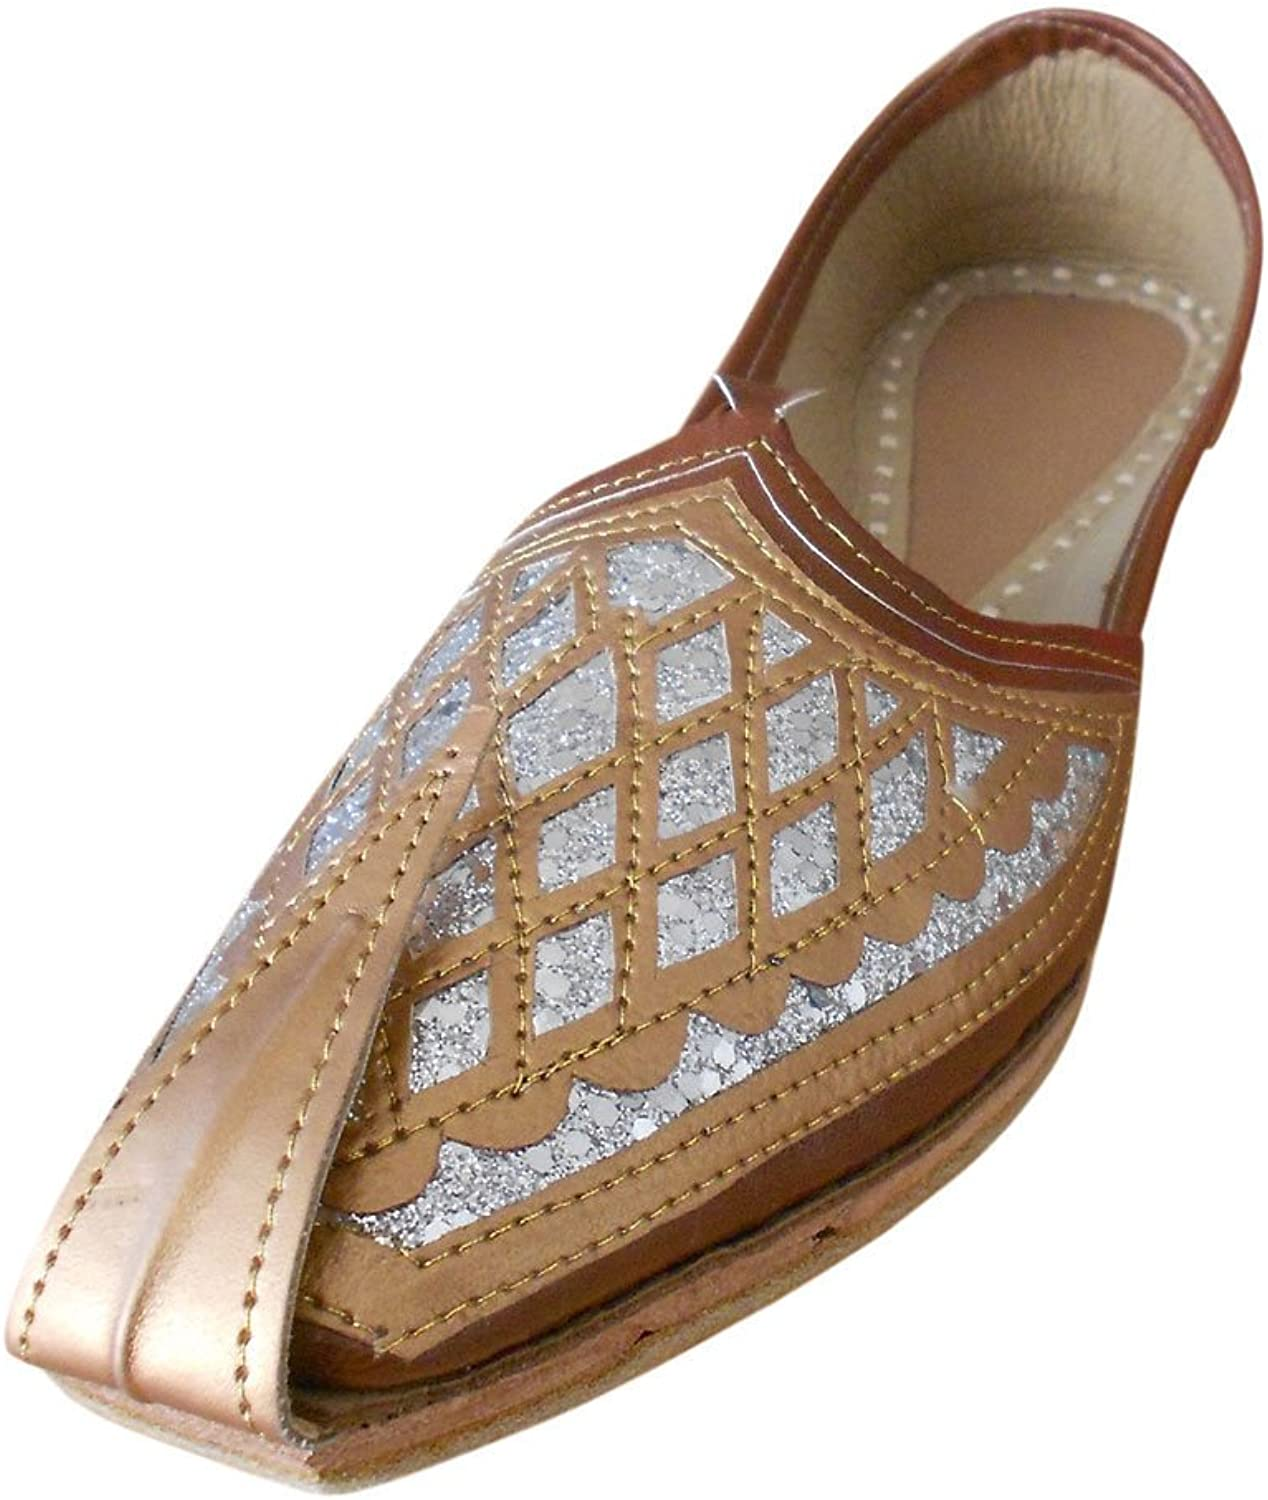 Kalra Creations Men's Traditional Faux Leather Indian Party shoes